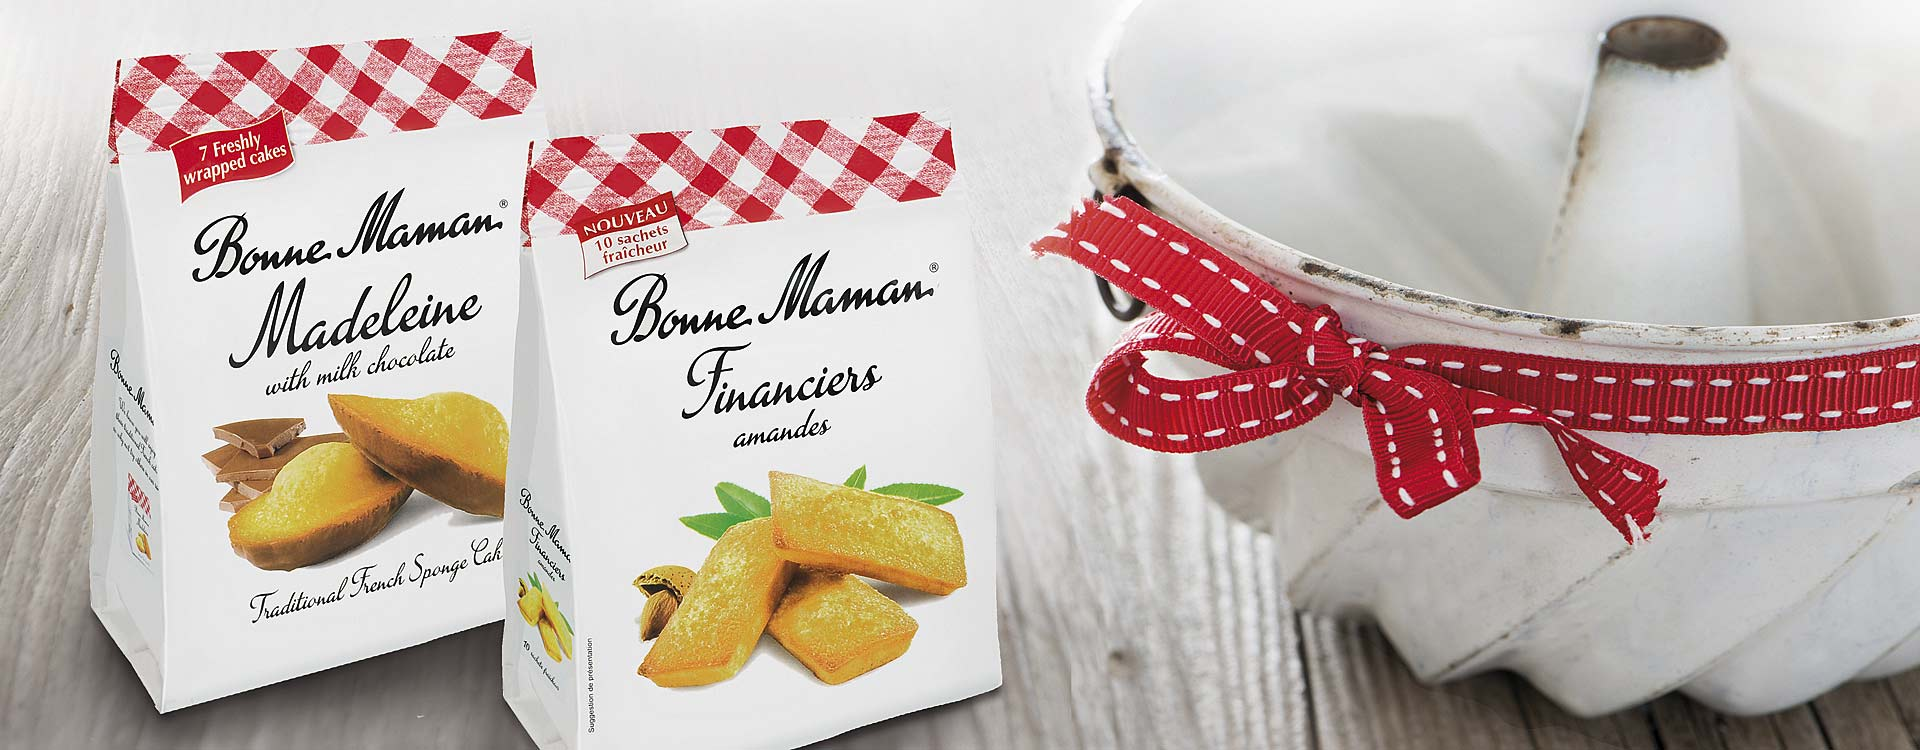 Top Food Feinkost - Bonne Maman Biscuits